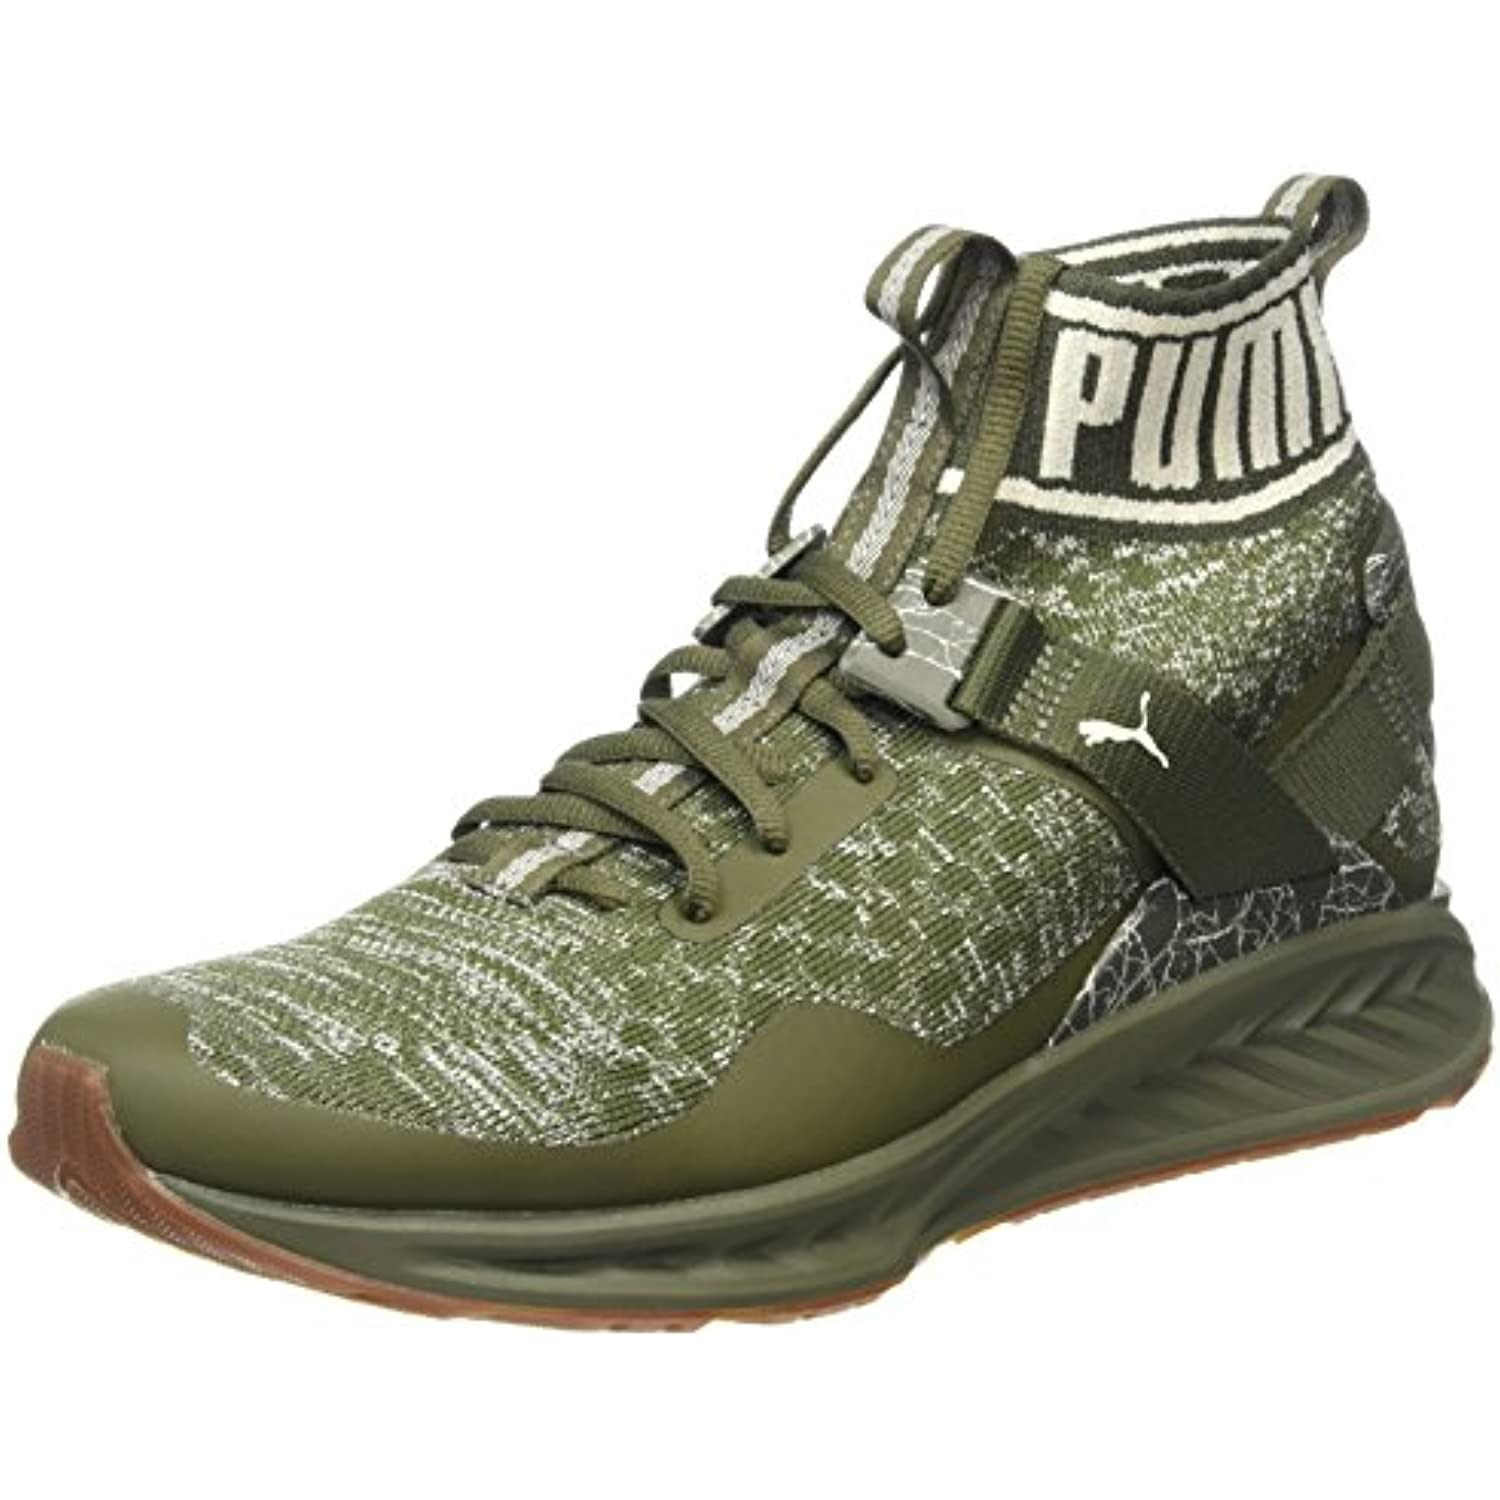 Puma Ignite Evoknit Hypernature,  Scarpe Sportive Outdoor Uomo  Hypernature, Parent 7b9f28